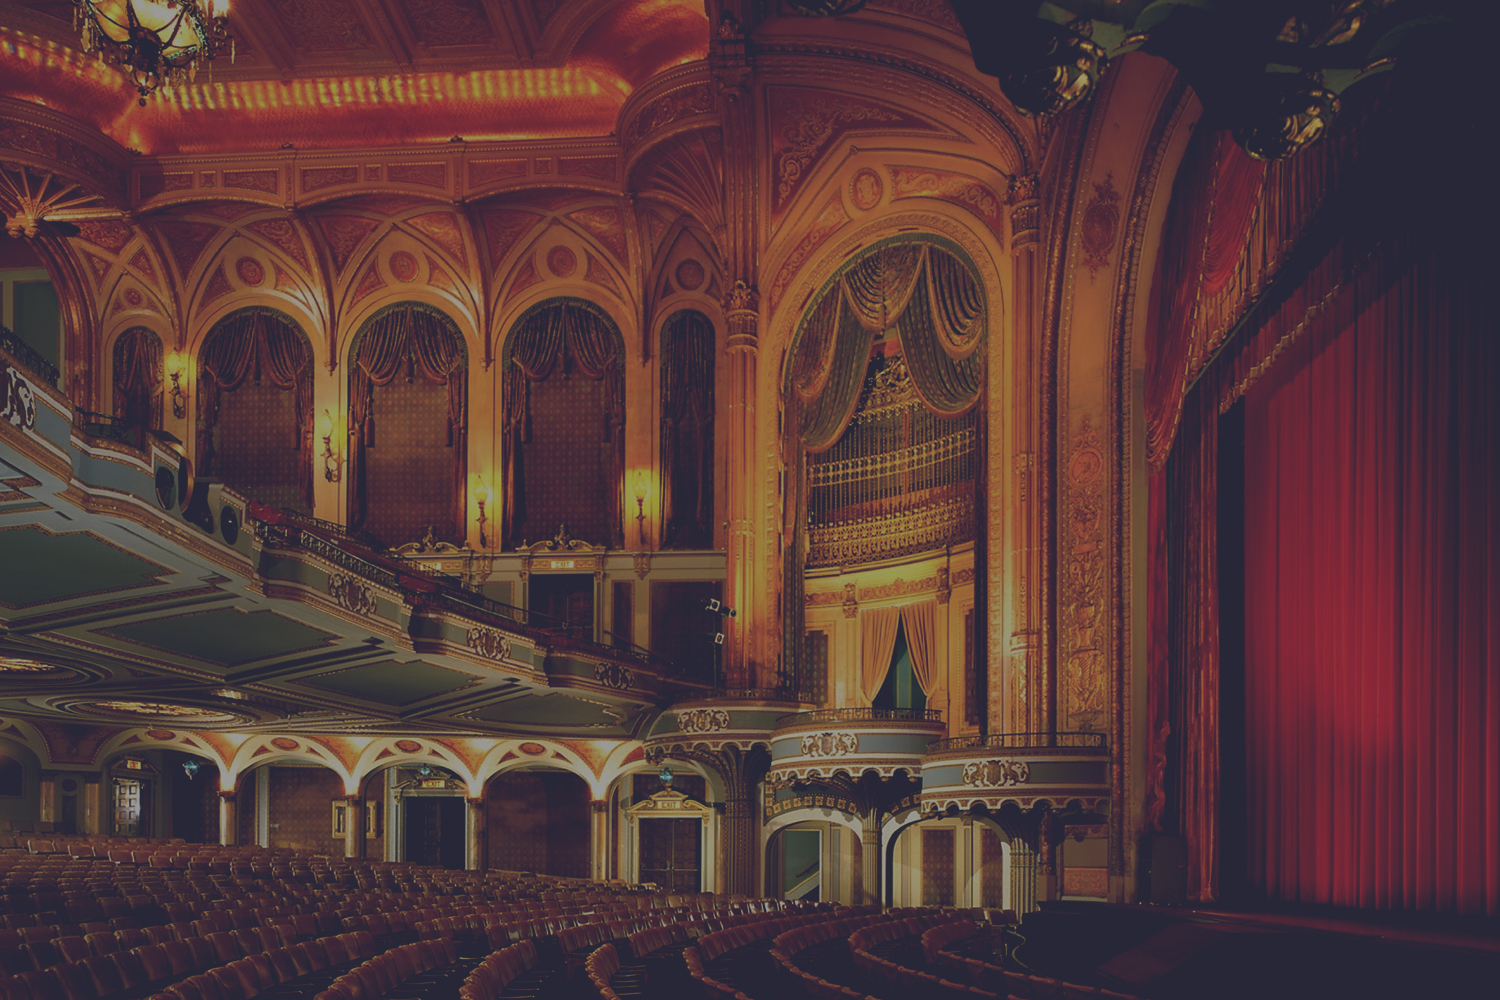 Pantages Theatre Los Angeles, Sunday at Orpheum Theatre | Los Angeles